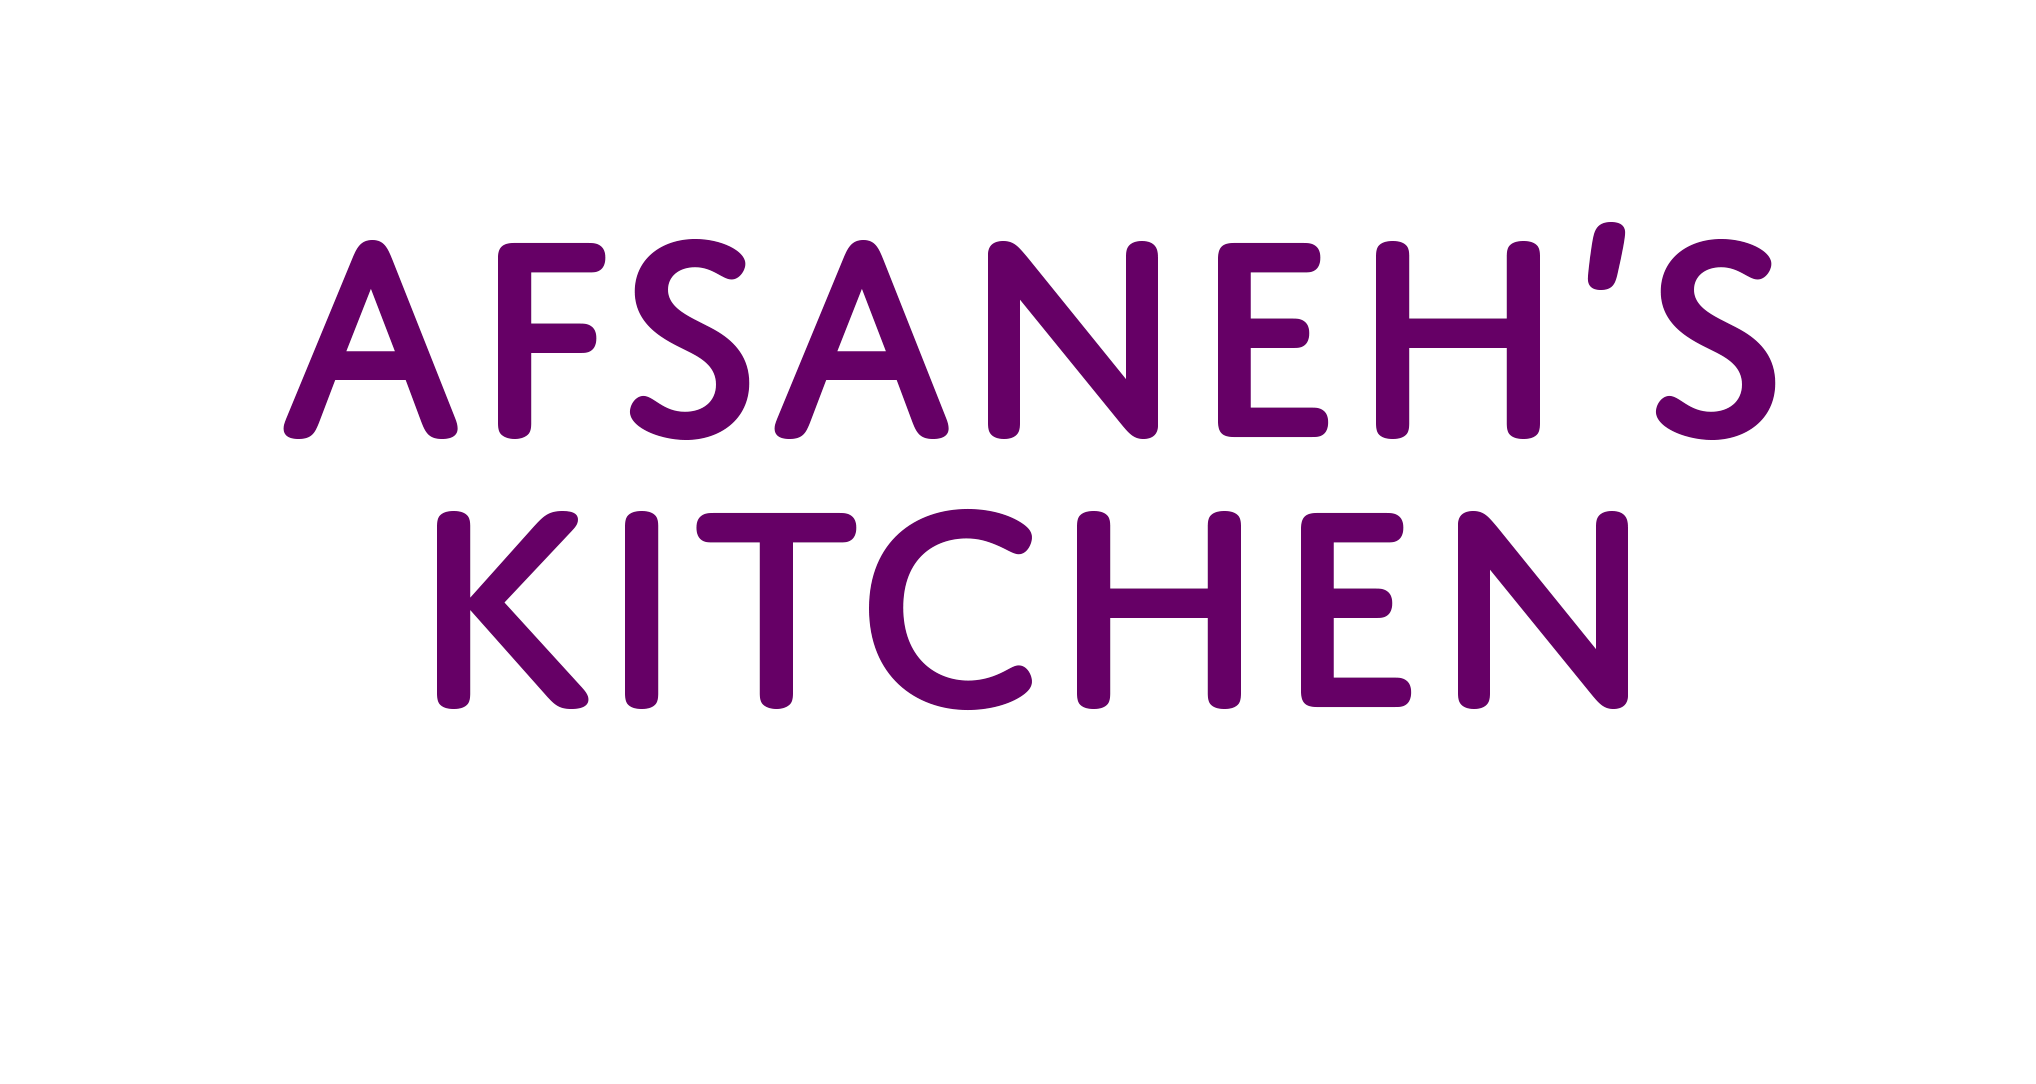 Afsaneh's